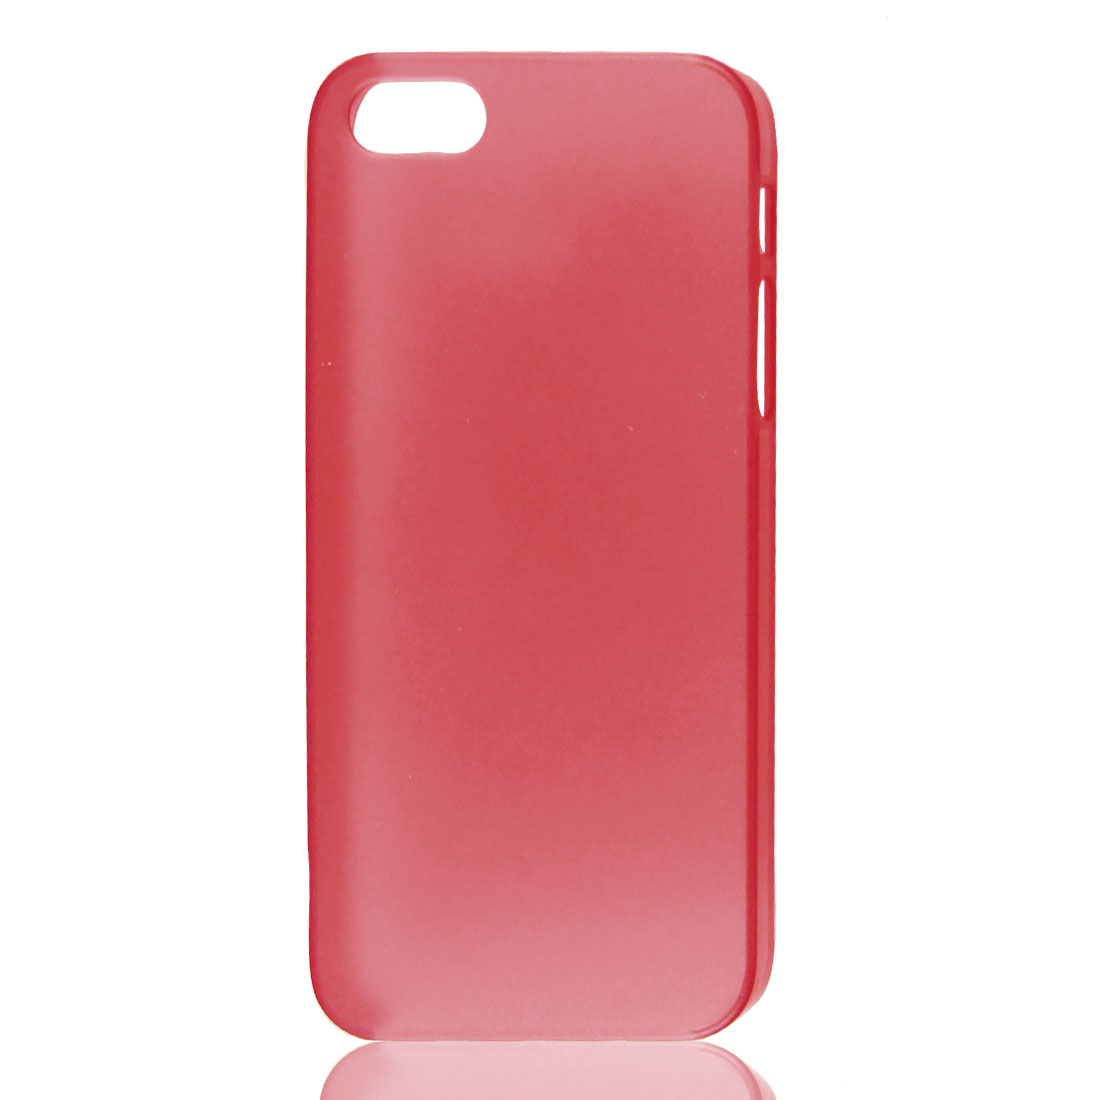 Clear Red Plastic Back Case Cover Skin for Apple iPhone 5 5G